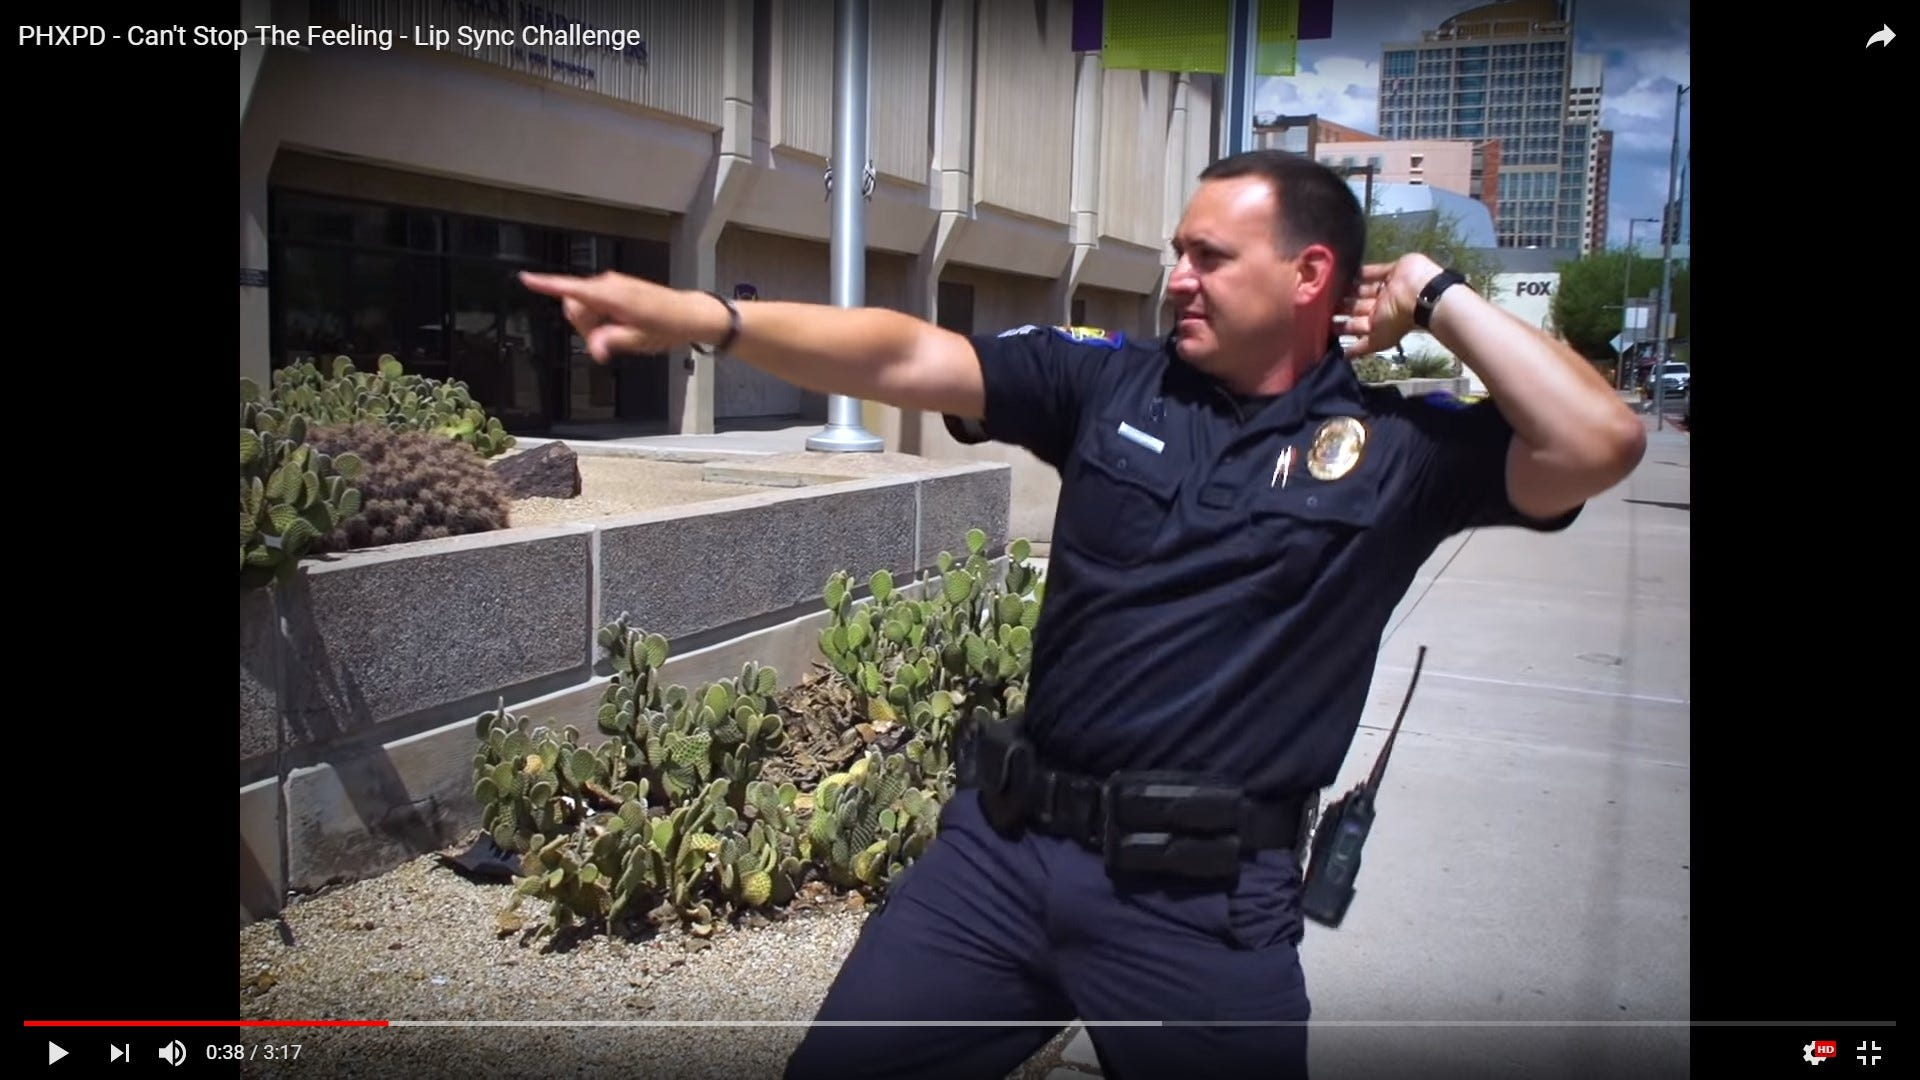 Phoenix police latest in Arizona to join law-enforcement lip sync challenge | AZ Central